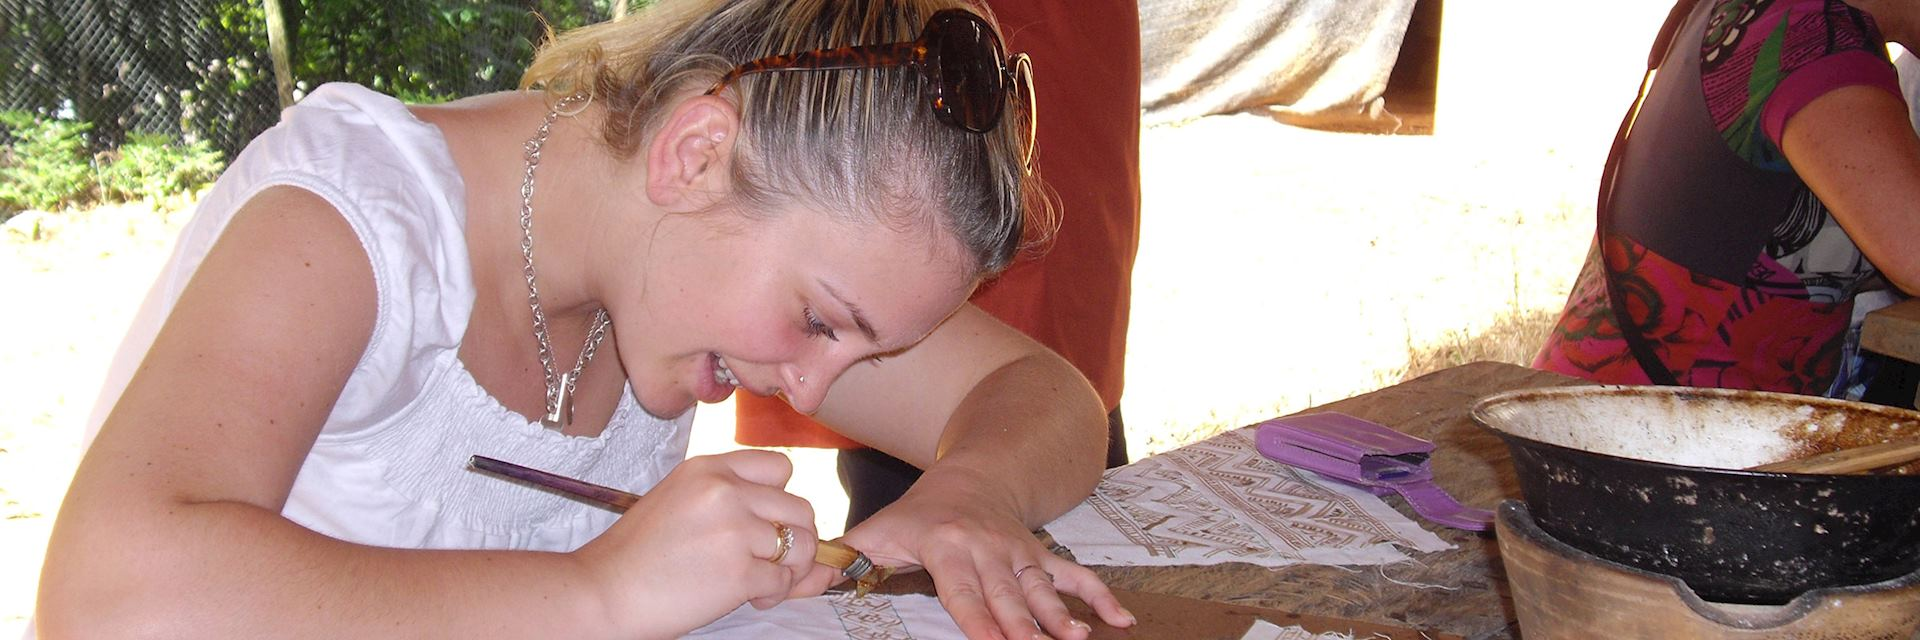 Charlotte making a traditional Hmong batik handkerchief, Thailand